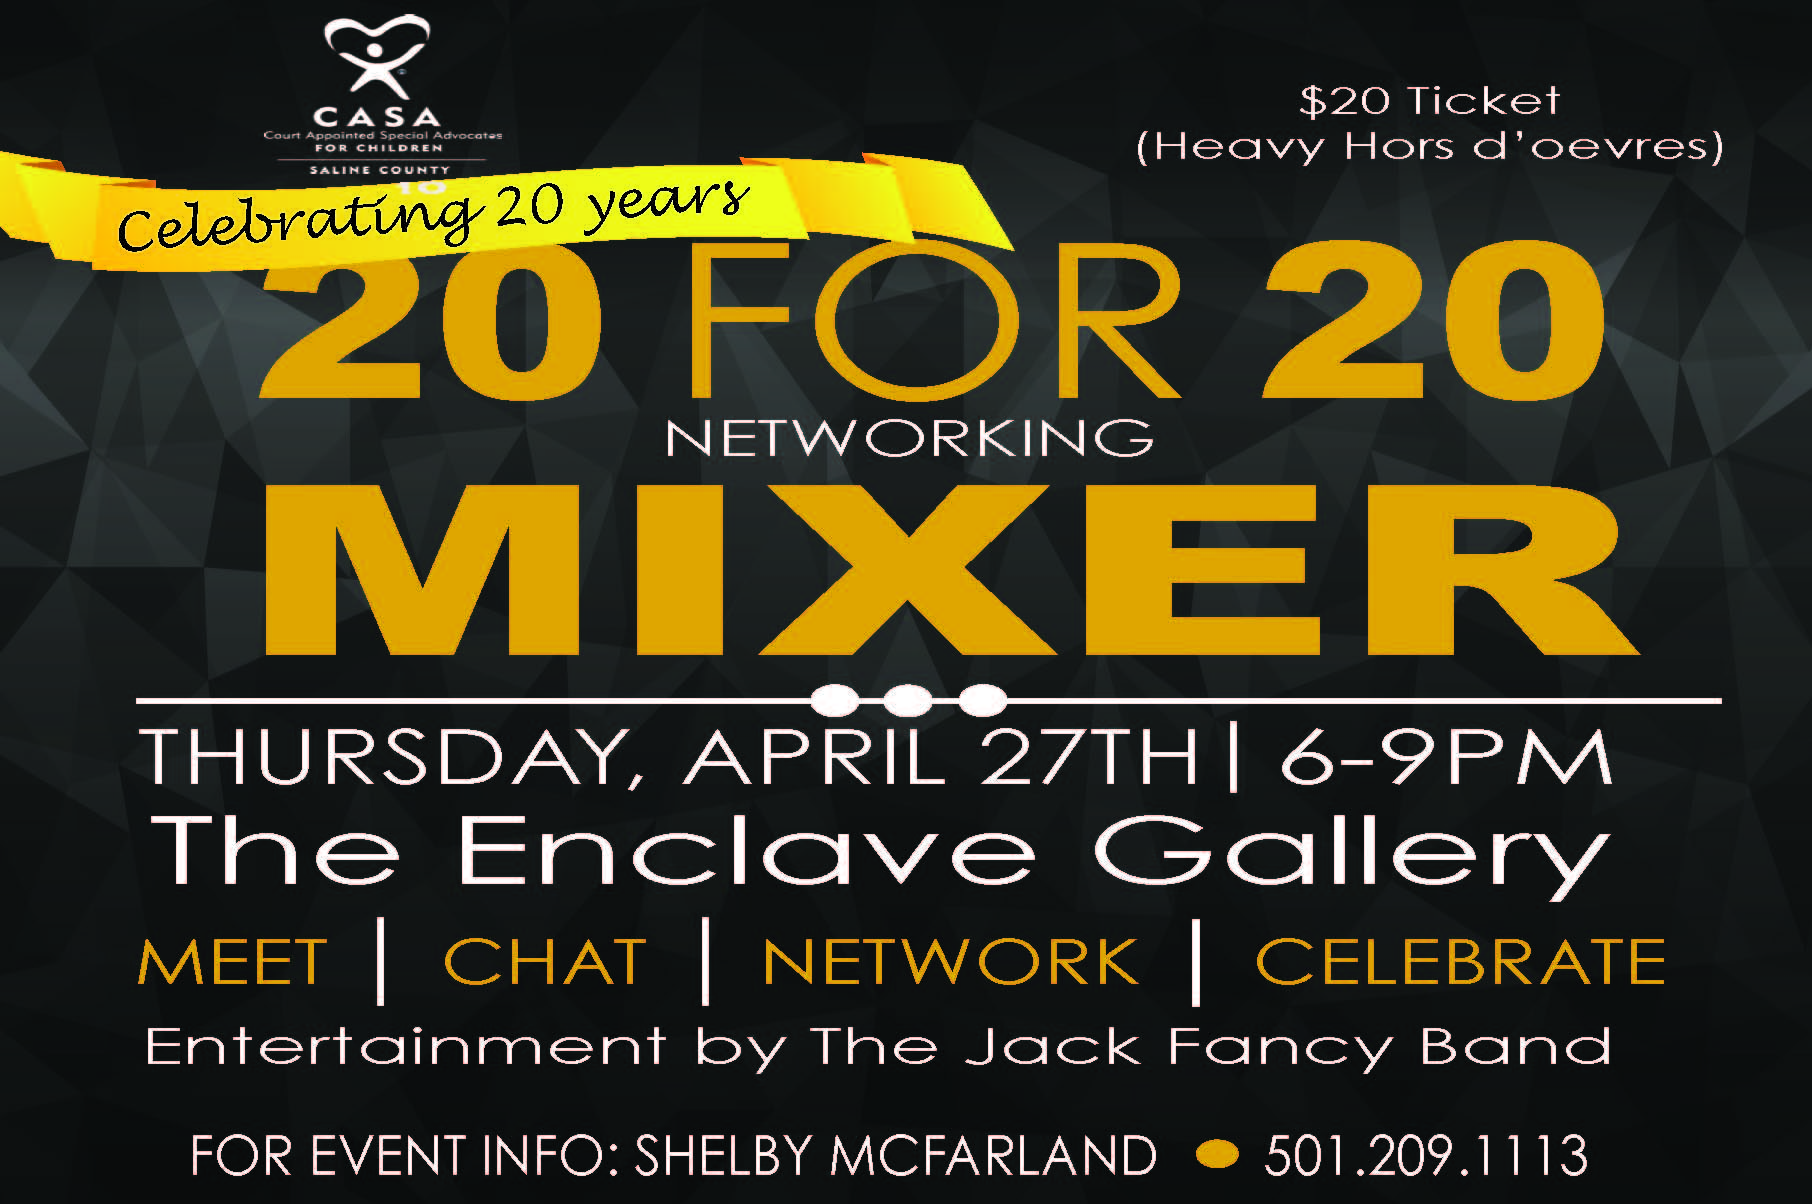 20 for 20 Mixer